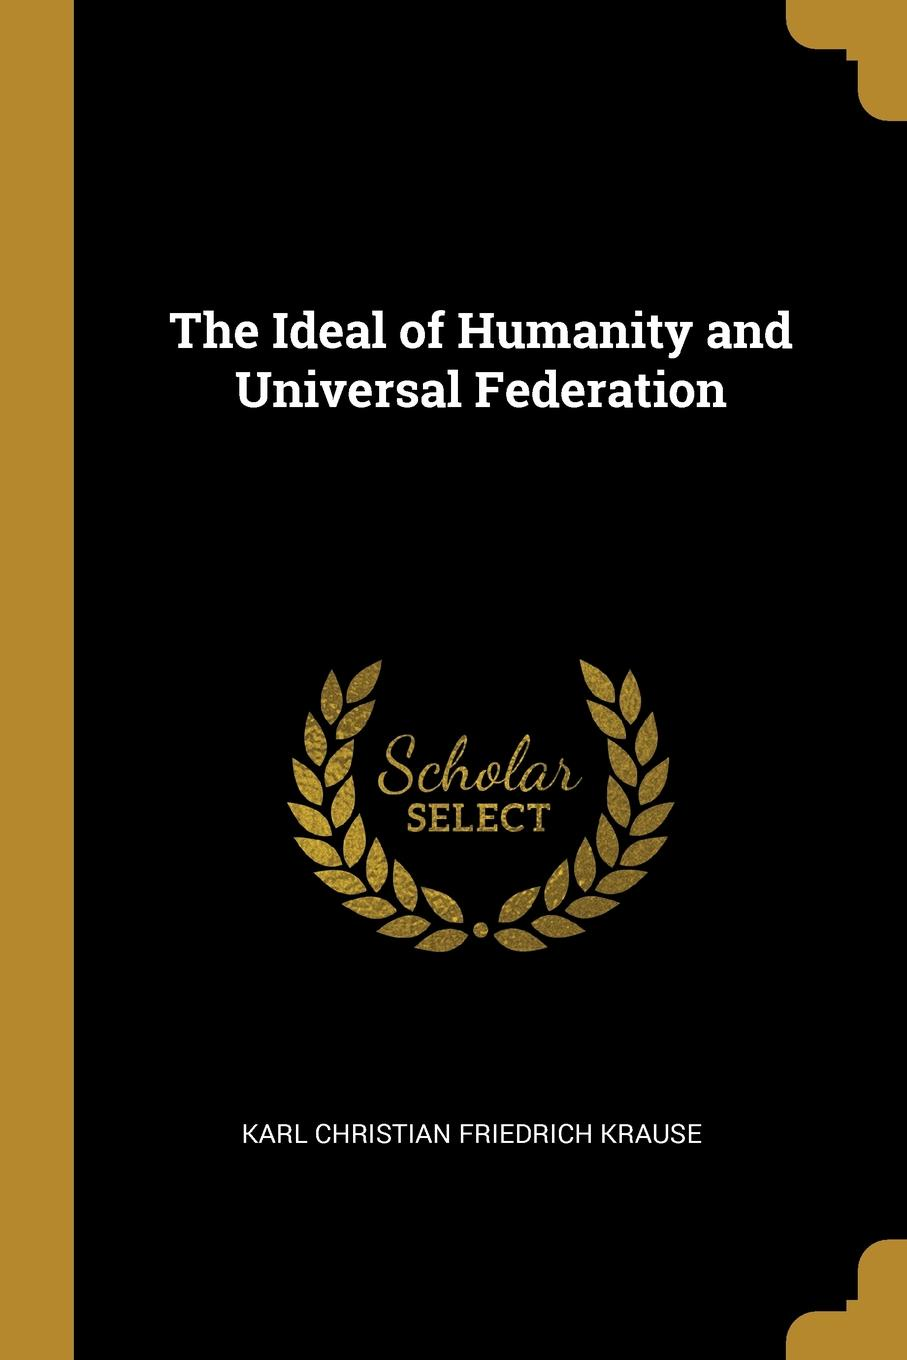 Karl Christian Friedrich Krause. The Ideal of Humanity and Universal Federation